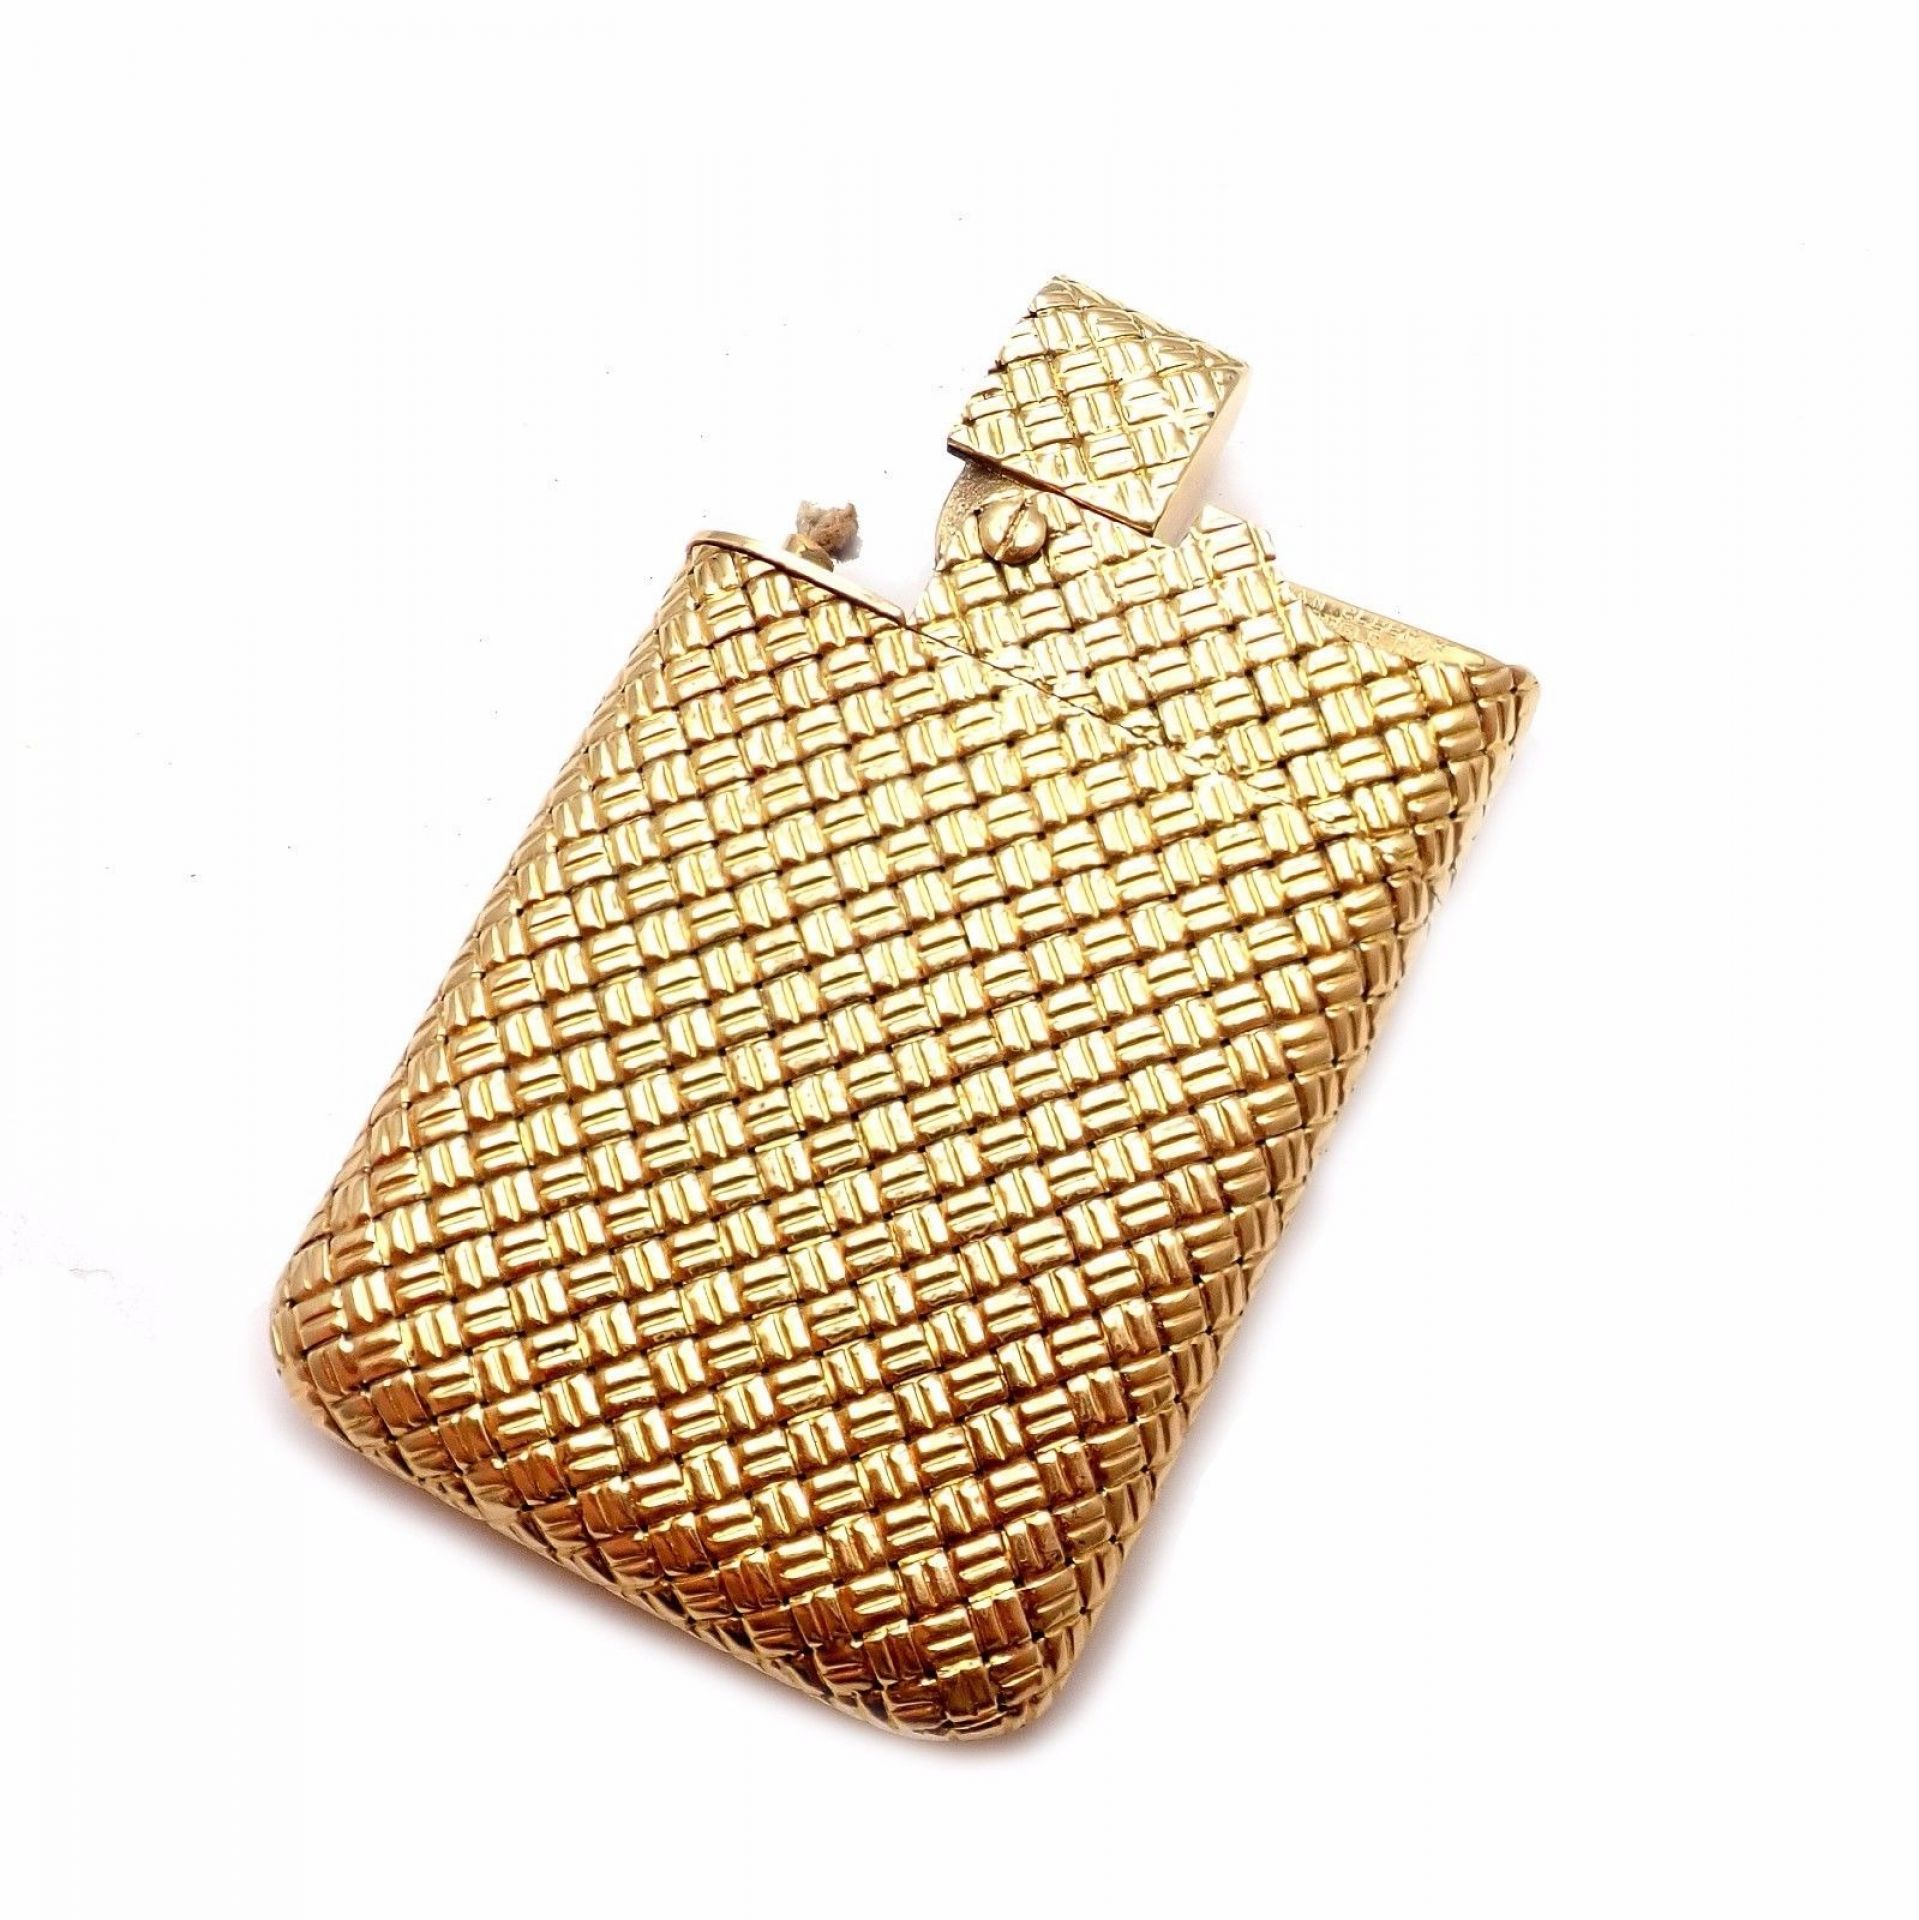 Rare! Authentic Vintage Van Cleef & Arpels VCA 7mm Thin 18k Yellow Gold Lighter